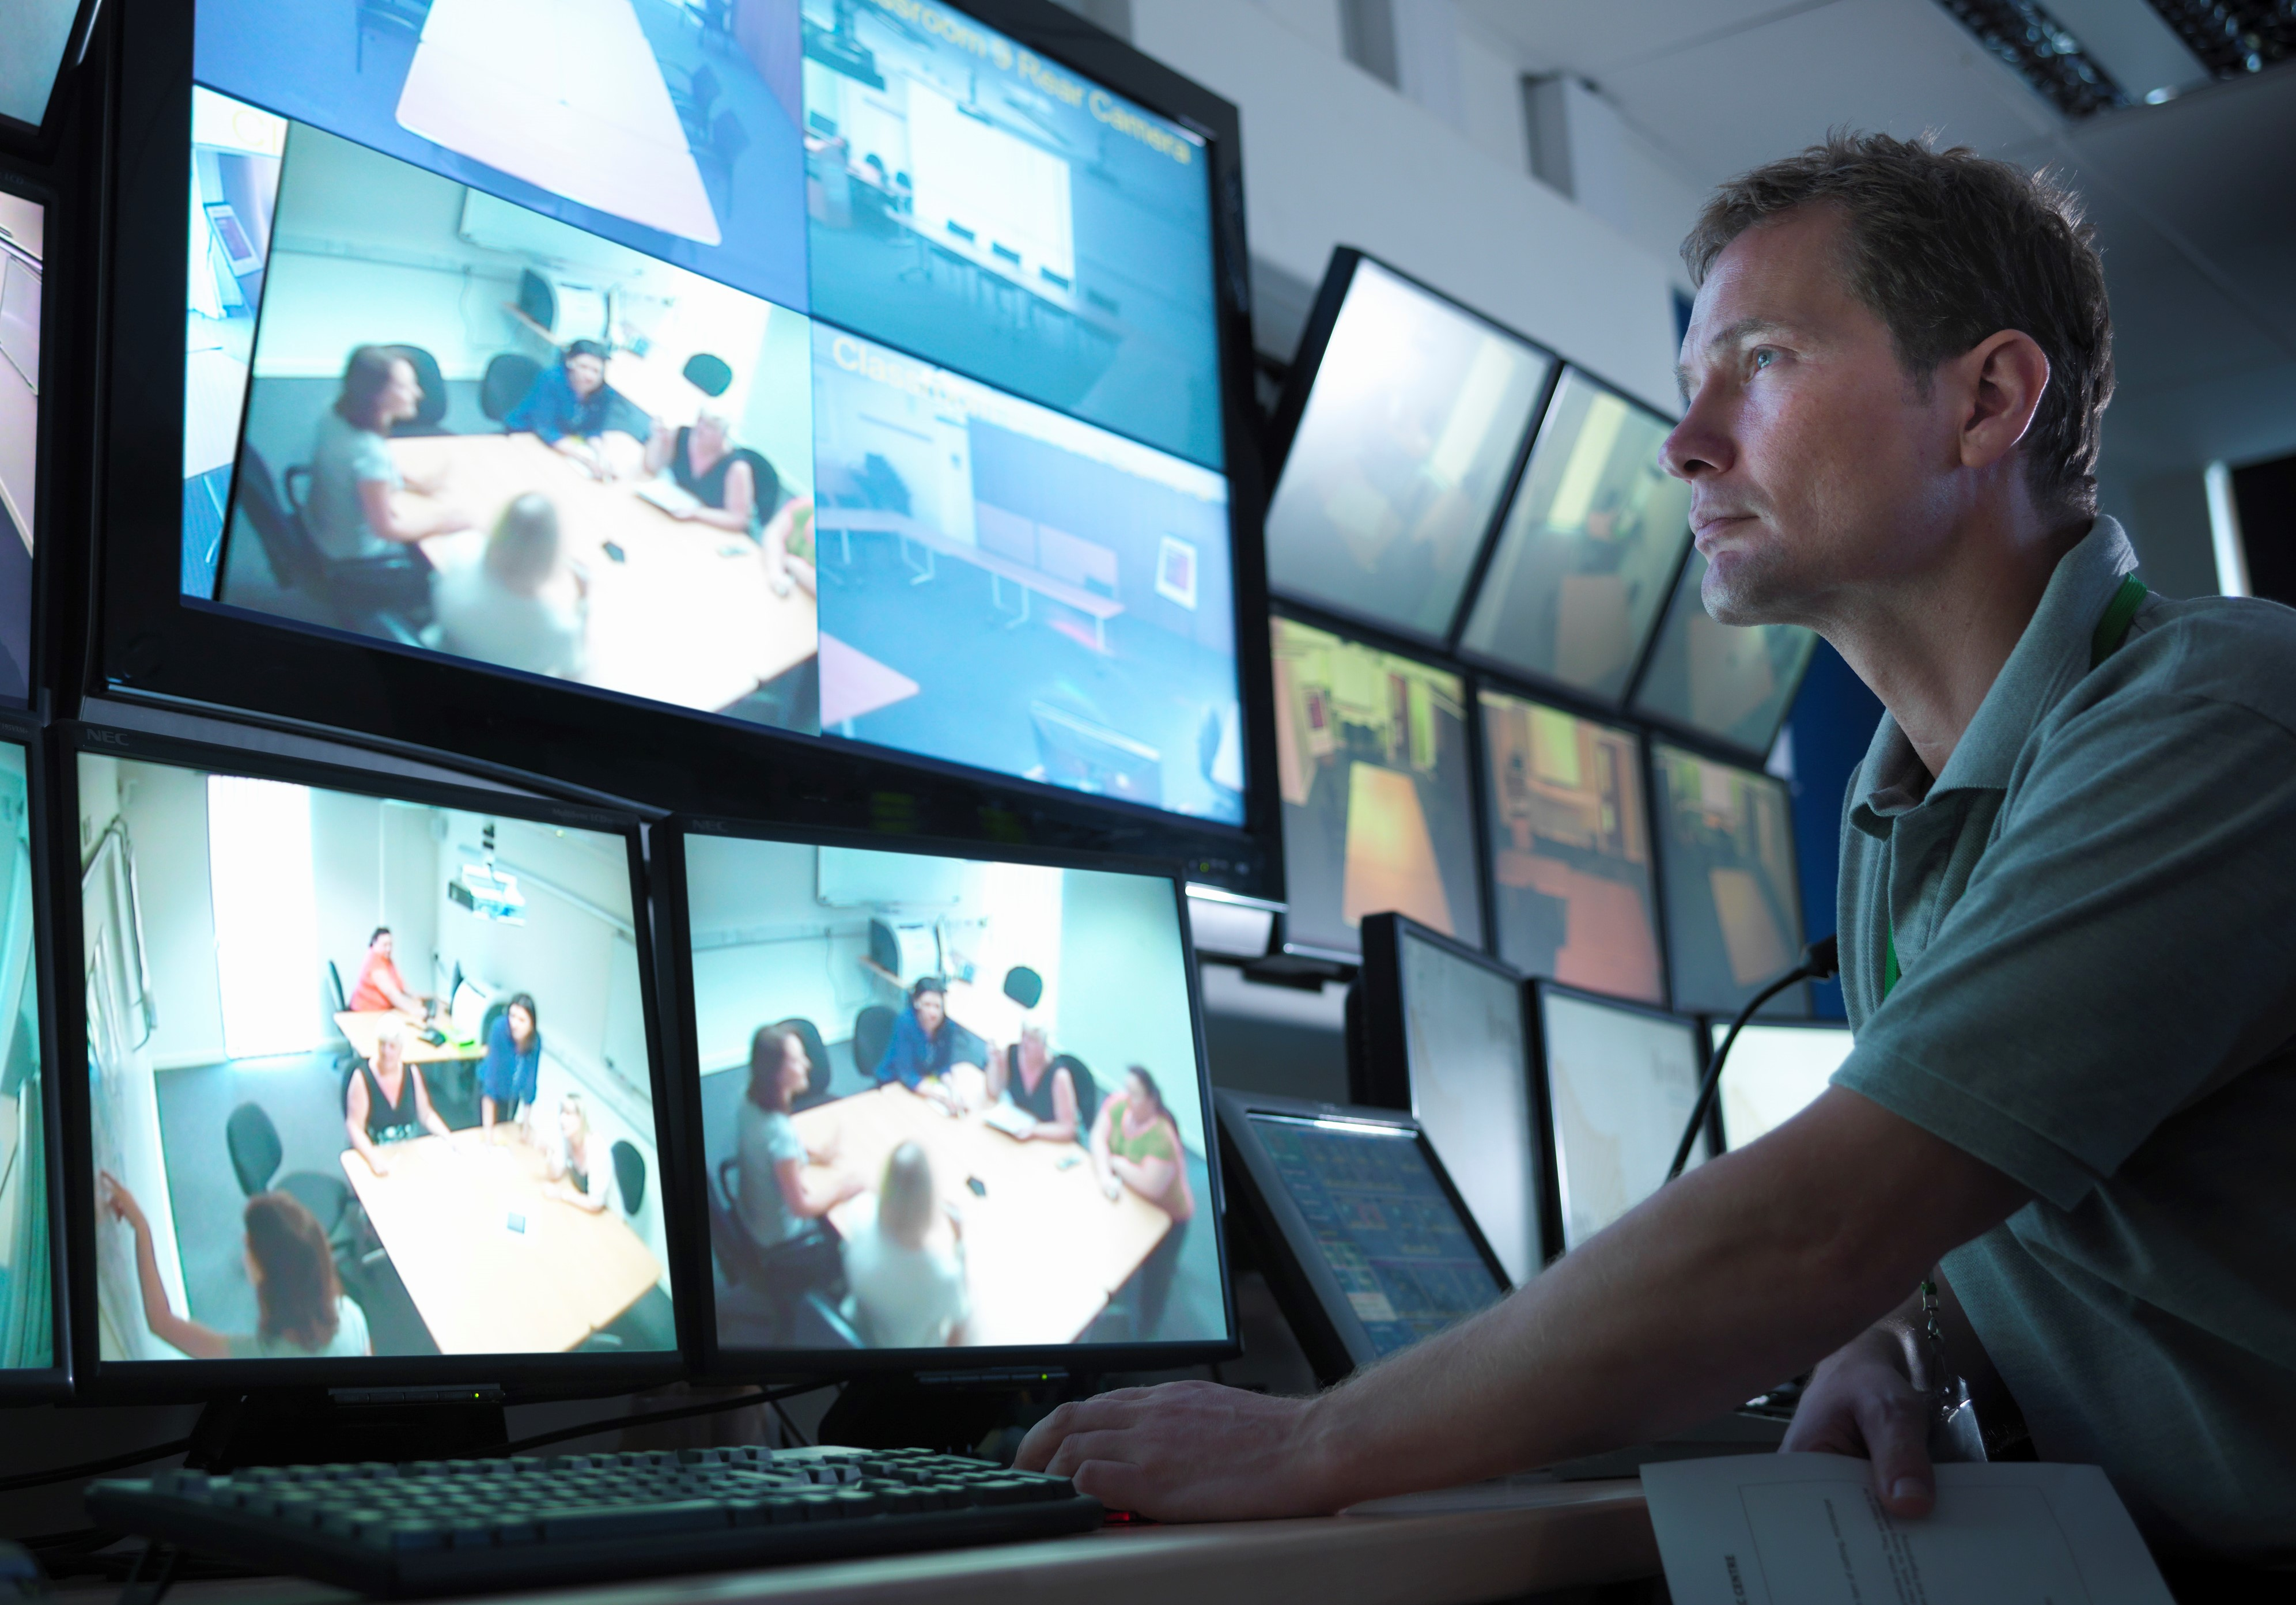 The surveillance of a person in the workplace: how legitimate this is